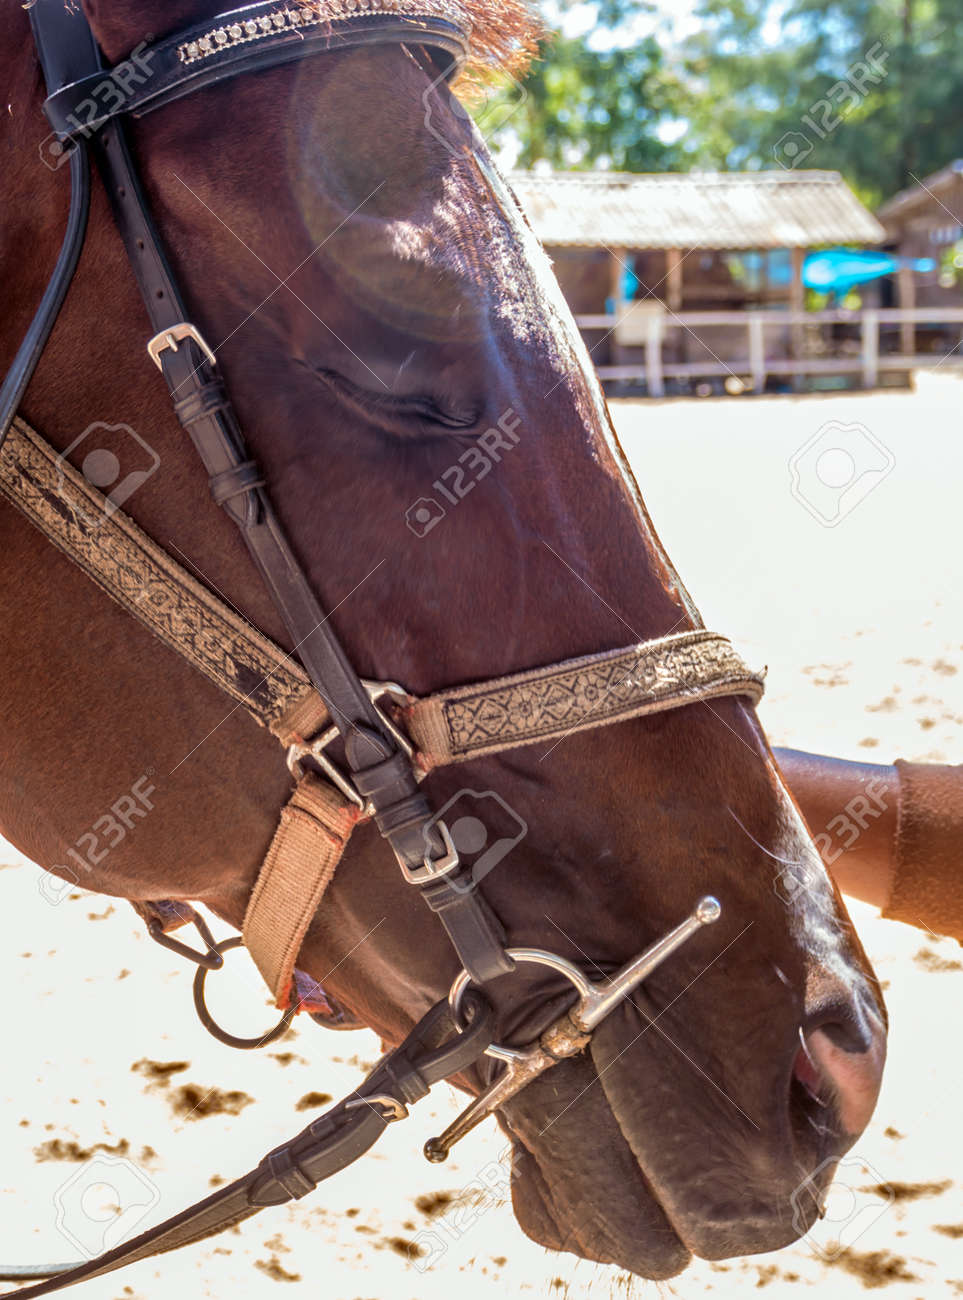 Horse close up That can see clear eyes, fine-hair skin, and wrinkles - 167263888